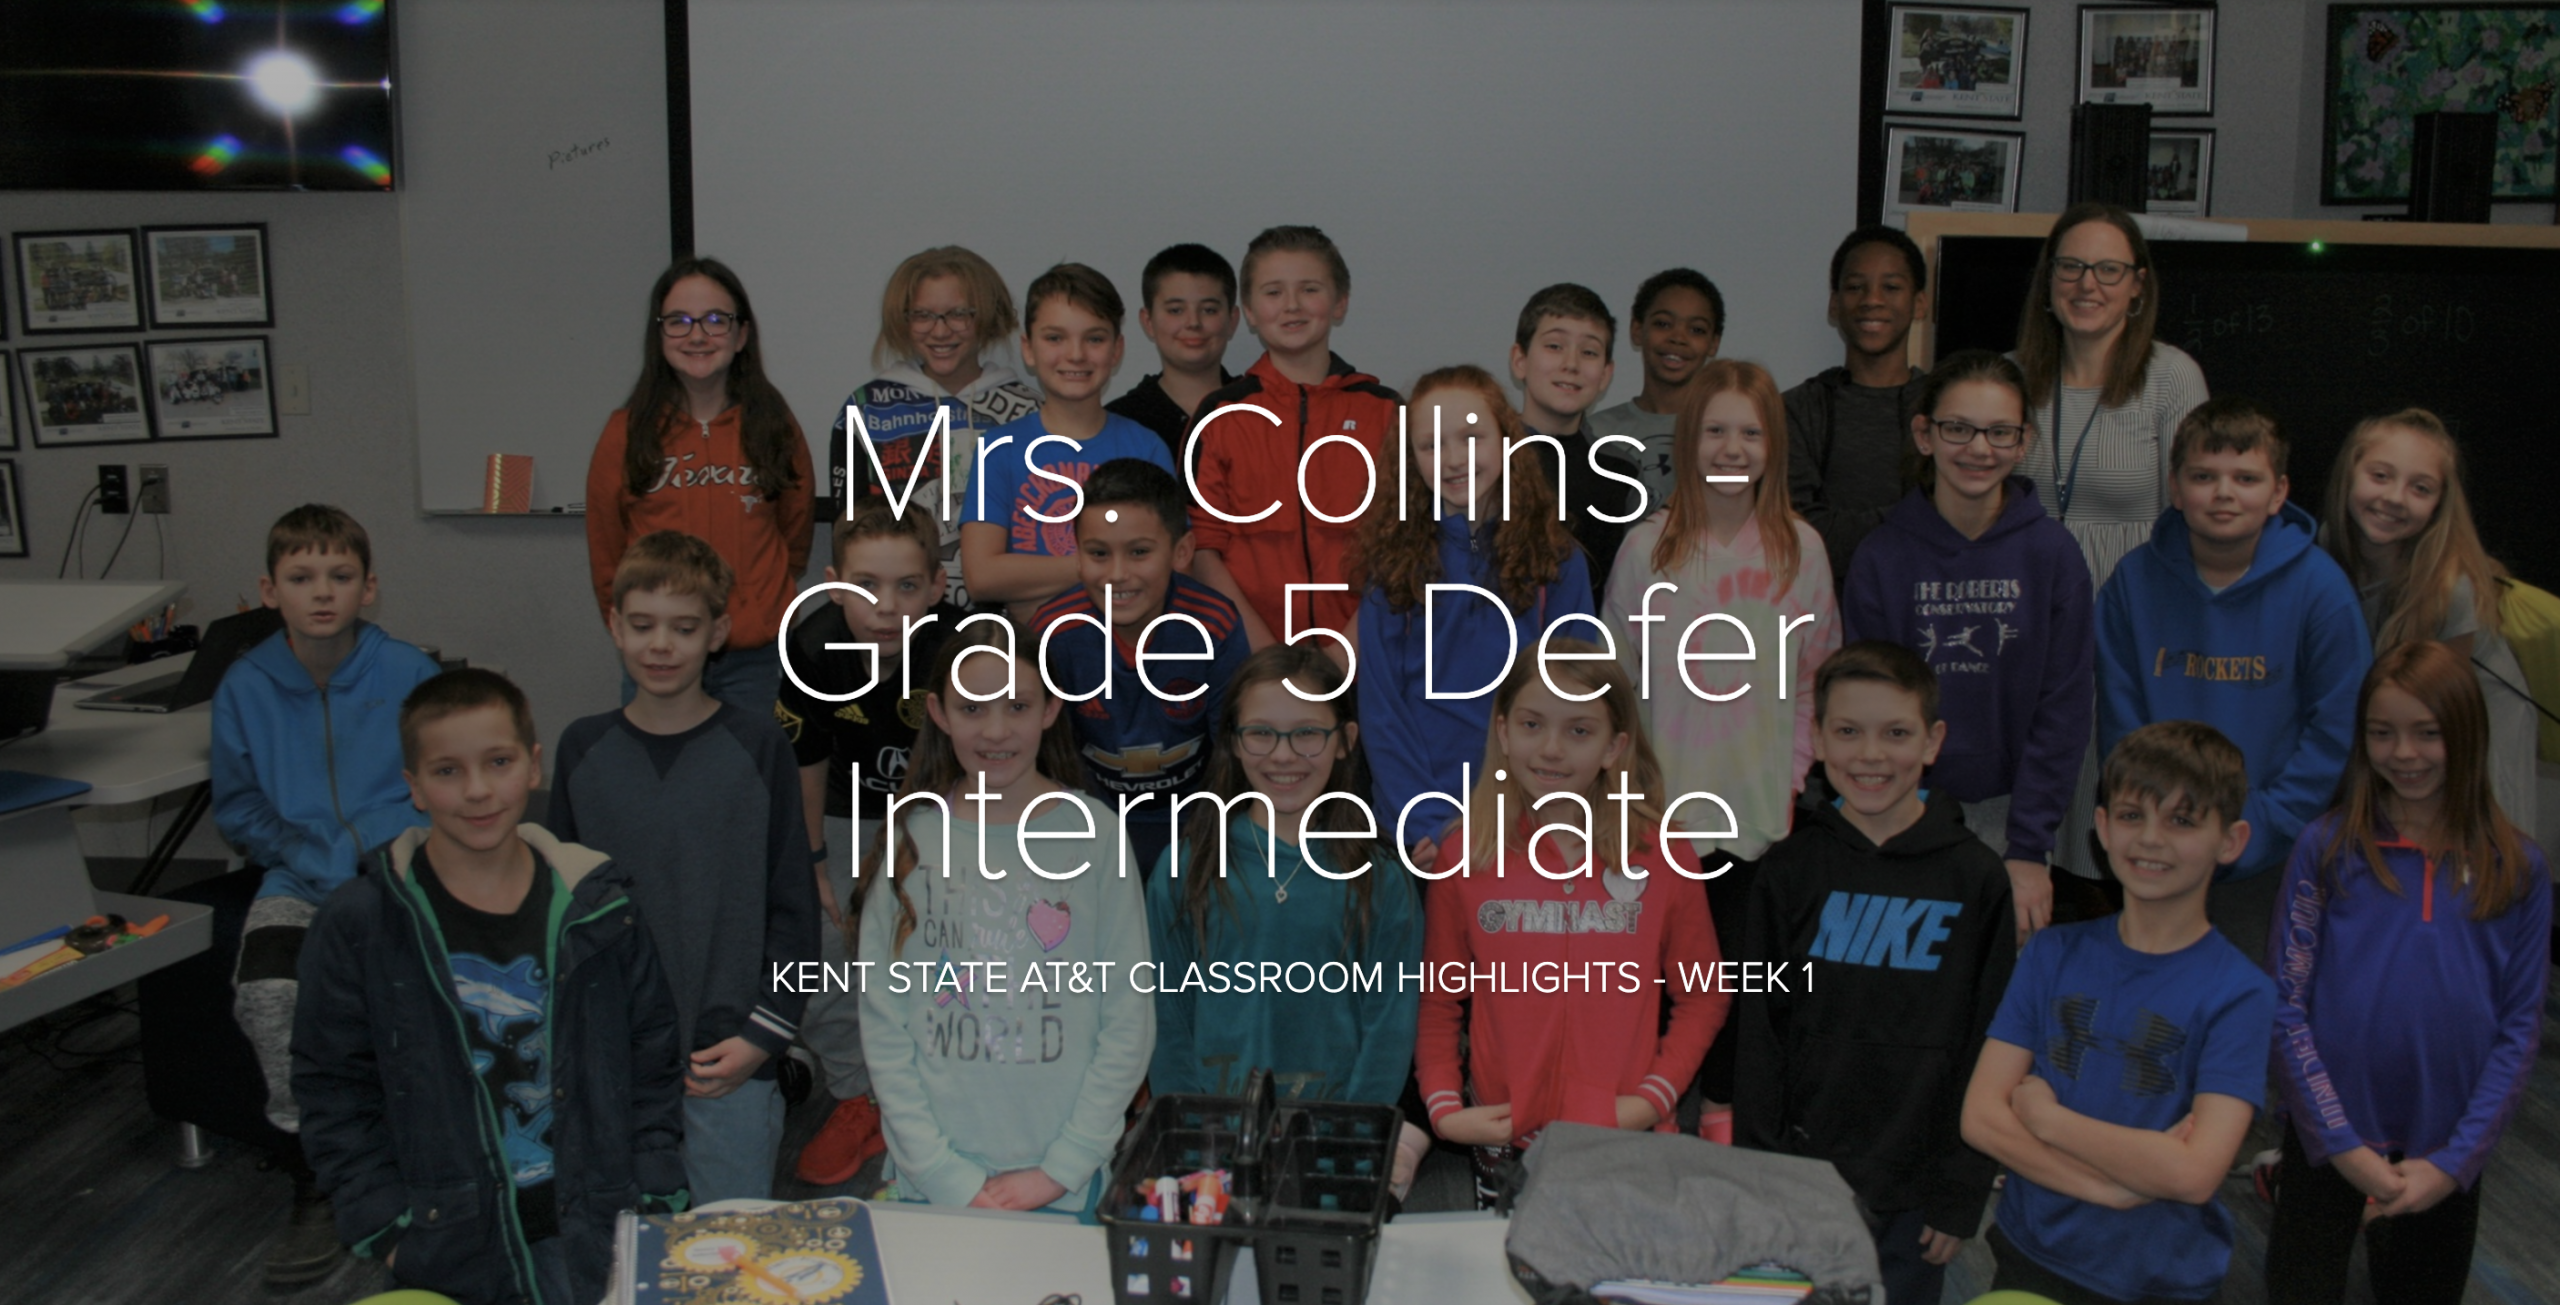 DEF | Mrs. Collins' Class Goes to Kent State University